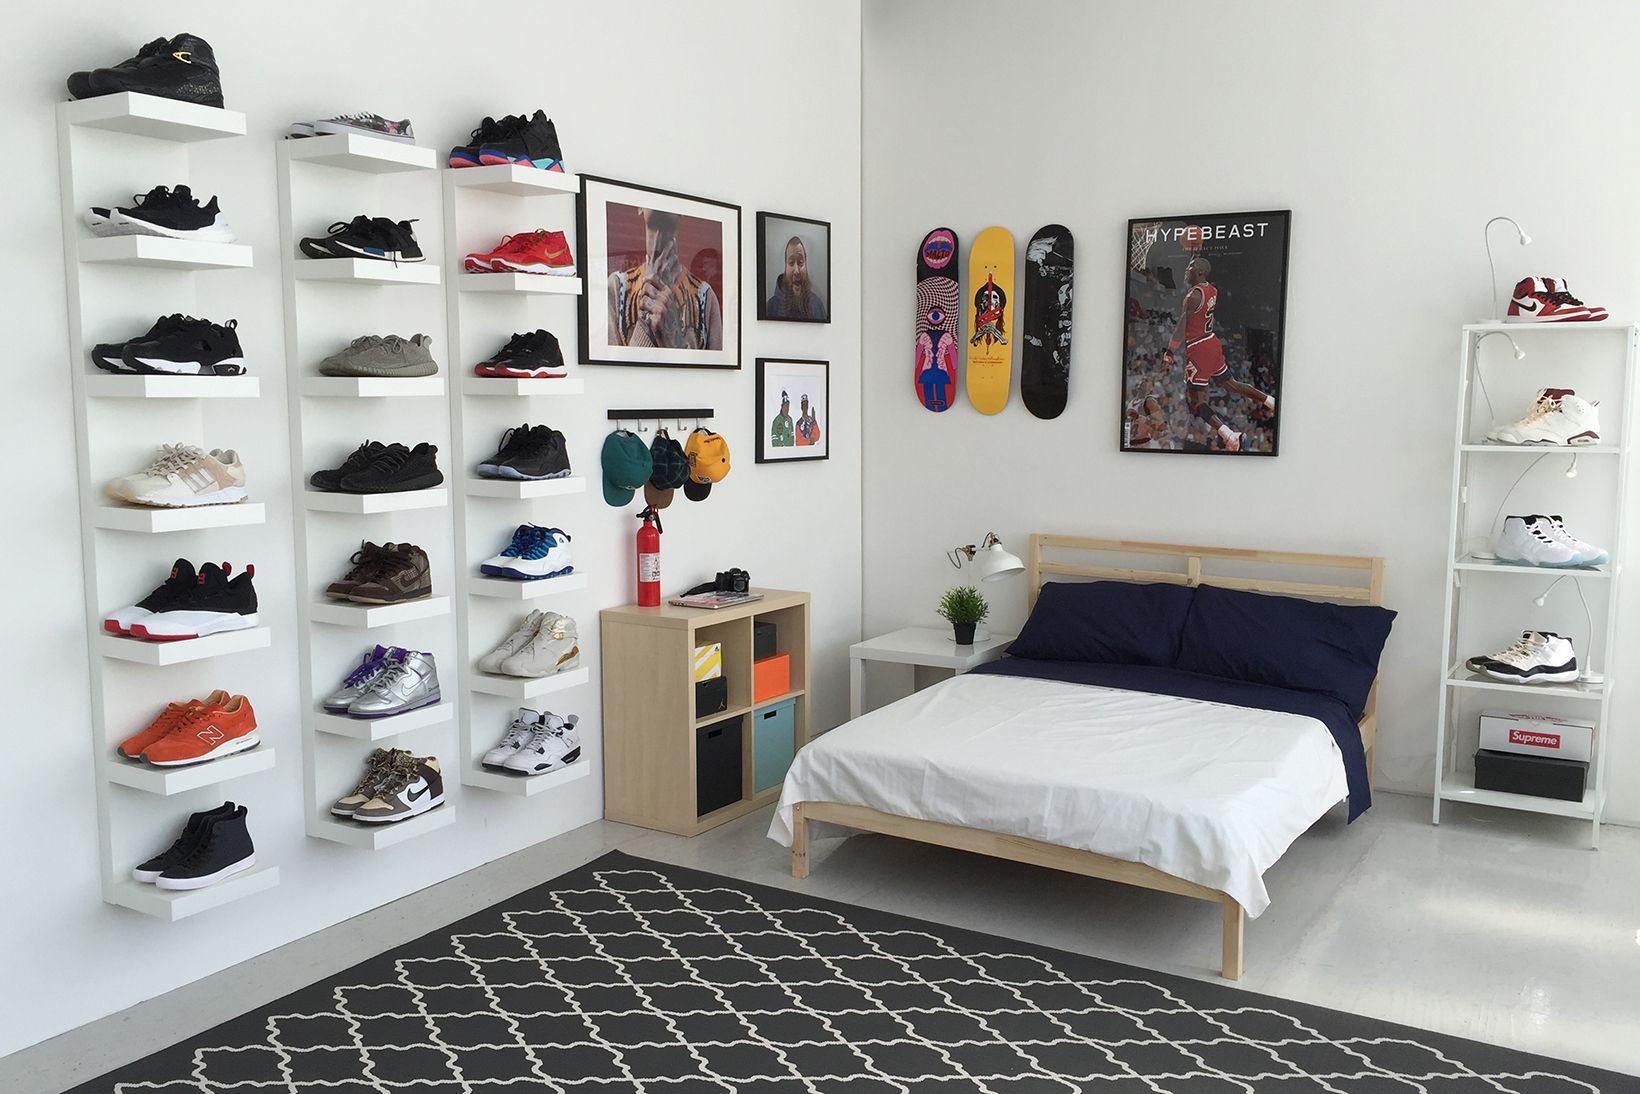 Ikea Schlafzimmer Jugend Ikea And Hypebeast Design The Ideal Sneakerhead Bedroom Sneaker